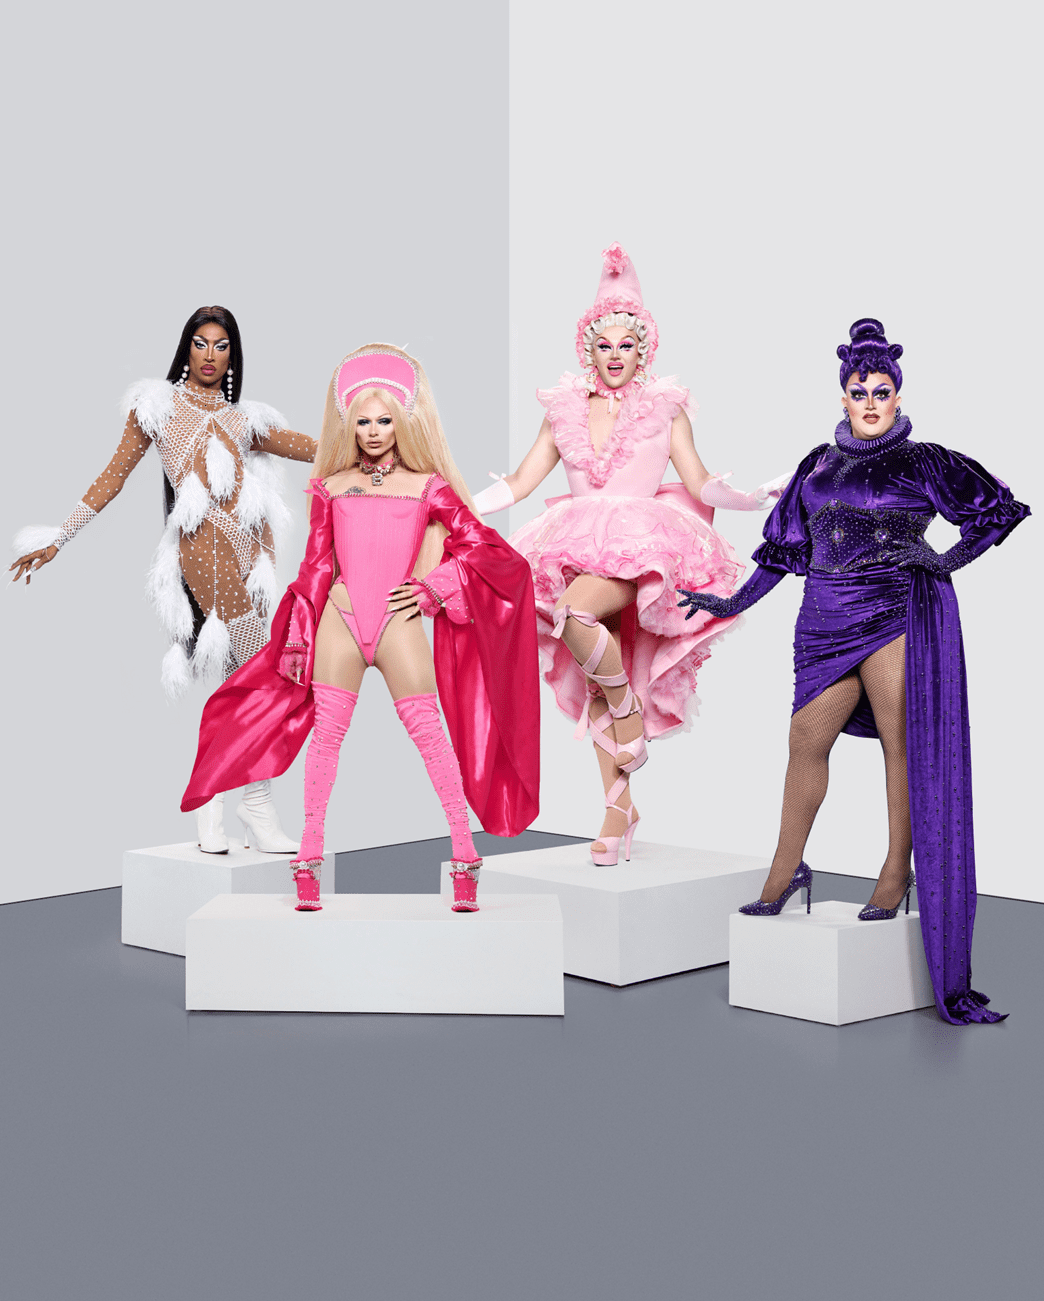 RUPAUL'S DRAG RACE UK: THE OFFICIAL TOUR  RU-TURNS FOR 2022